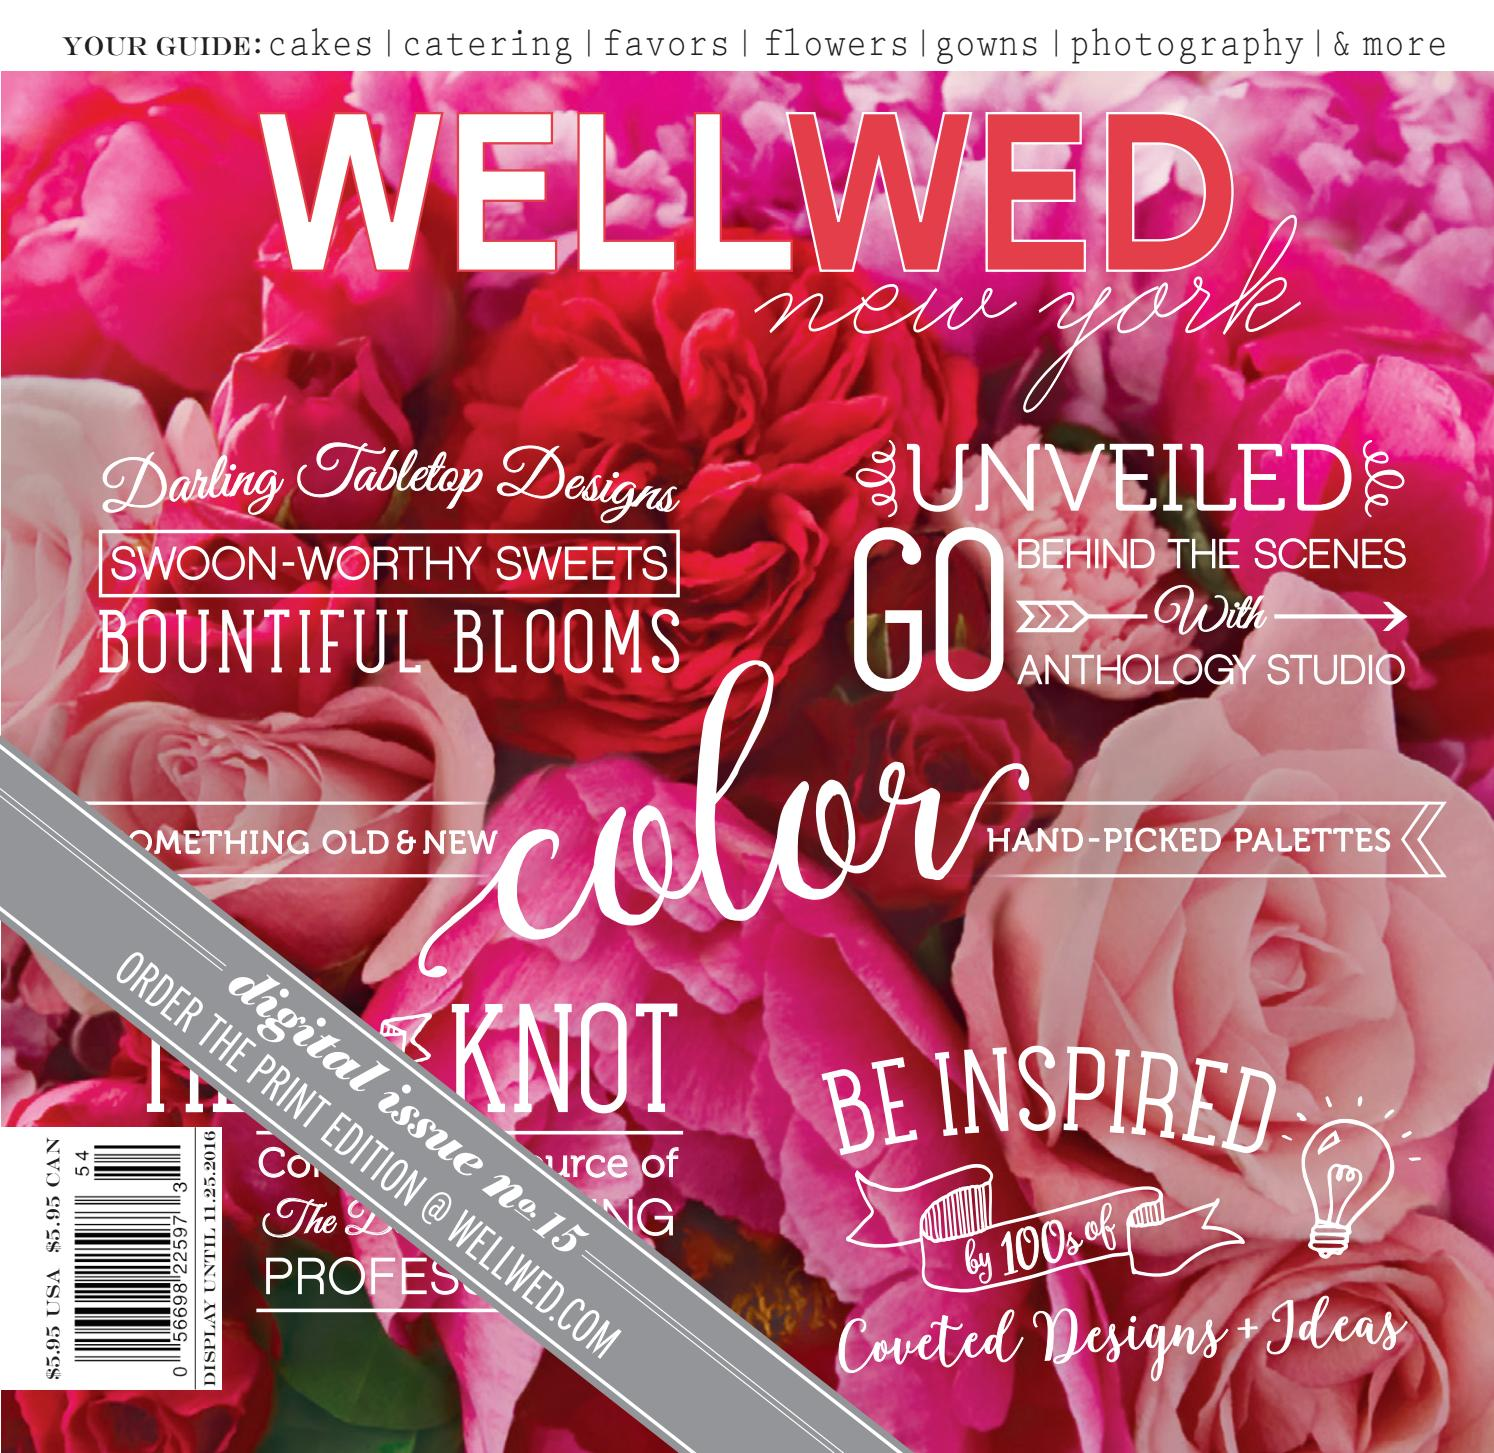 WellWed - New York [Issue No. 15] by Vermont Vows and WellWed ...